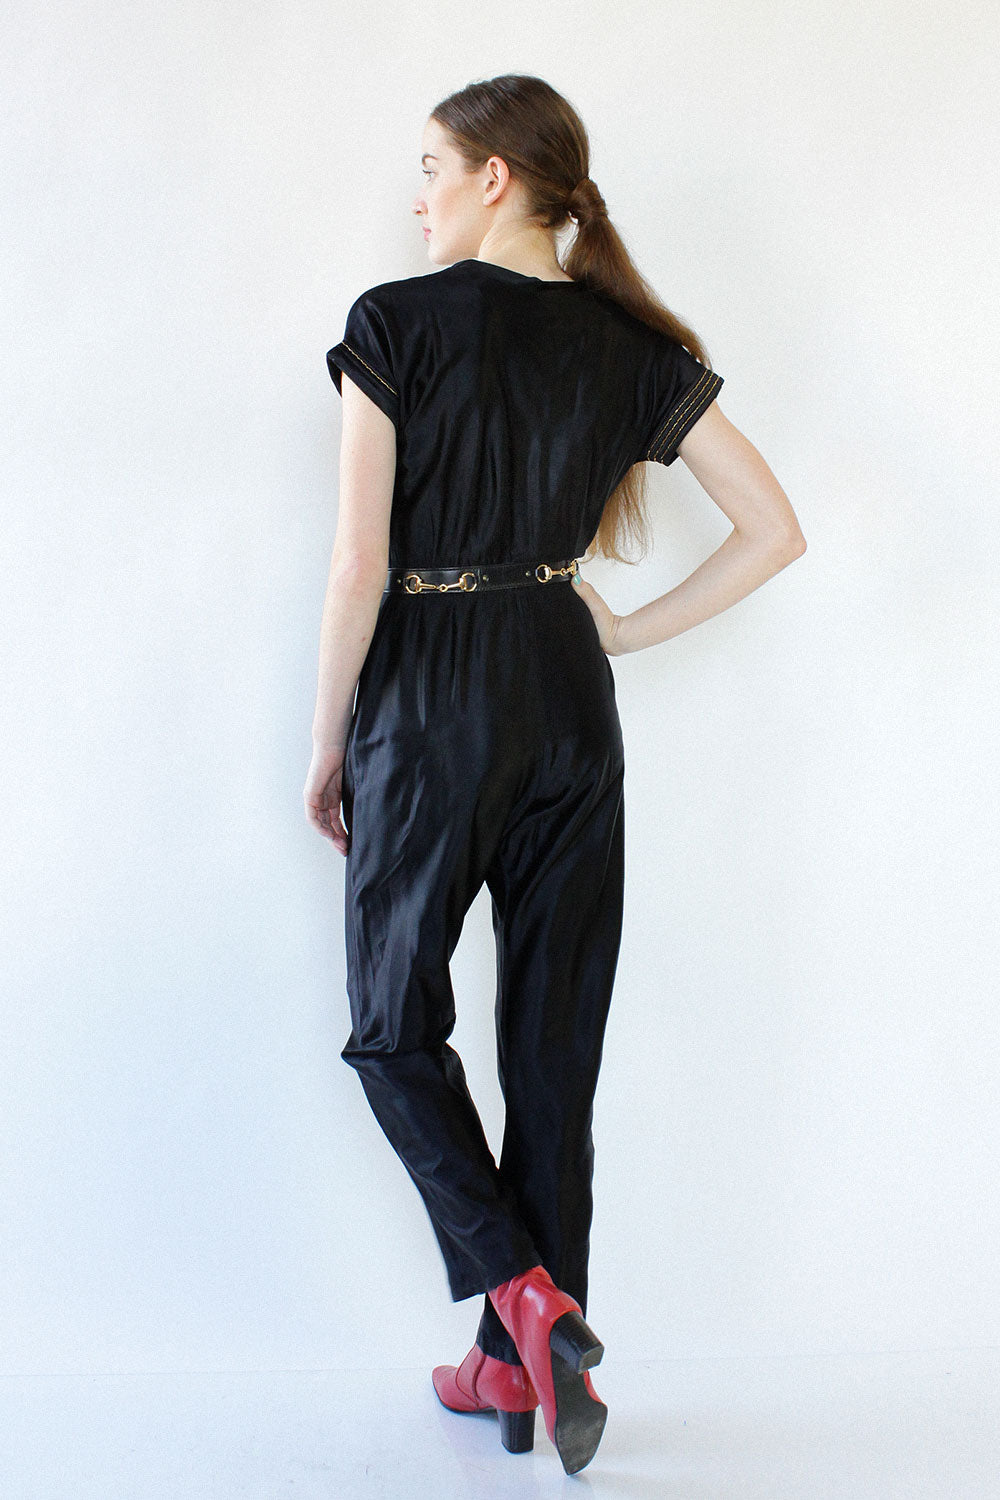 Champ Satin Wrap Jumpsuit S/M